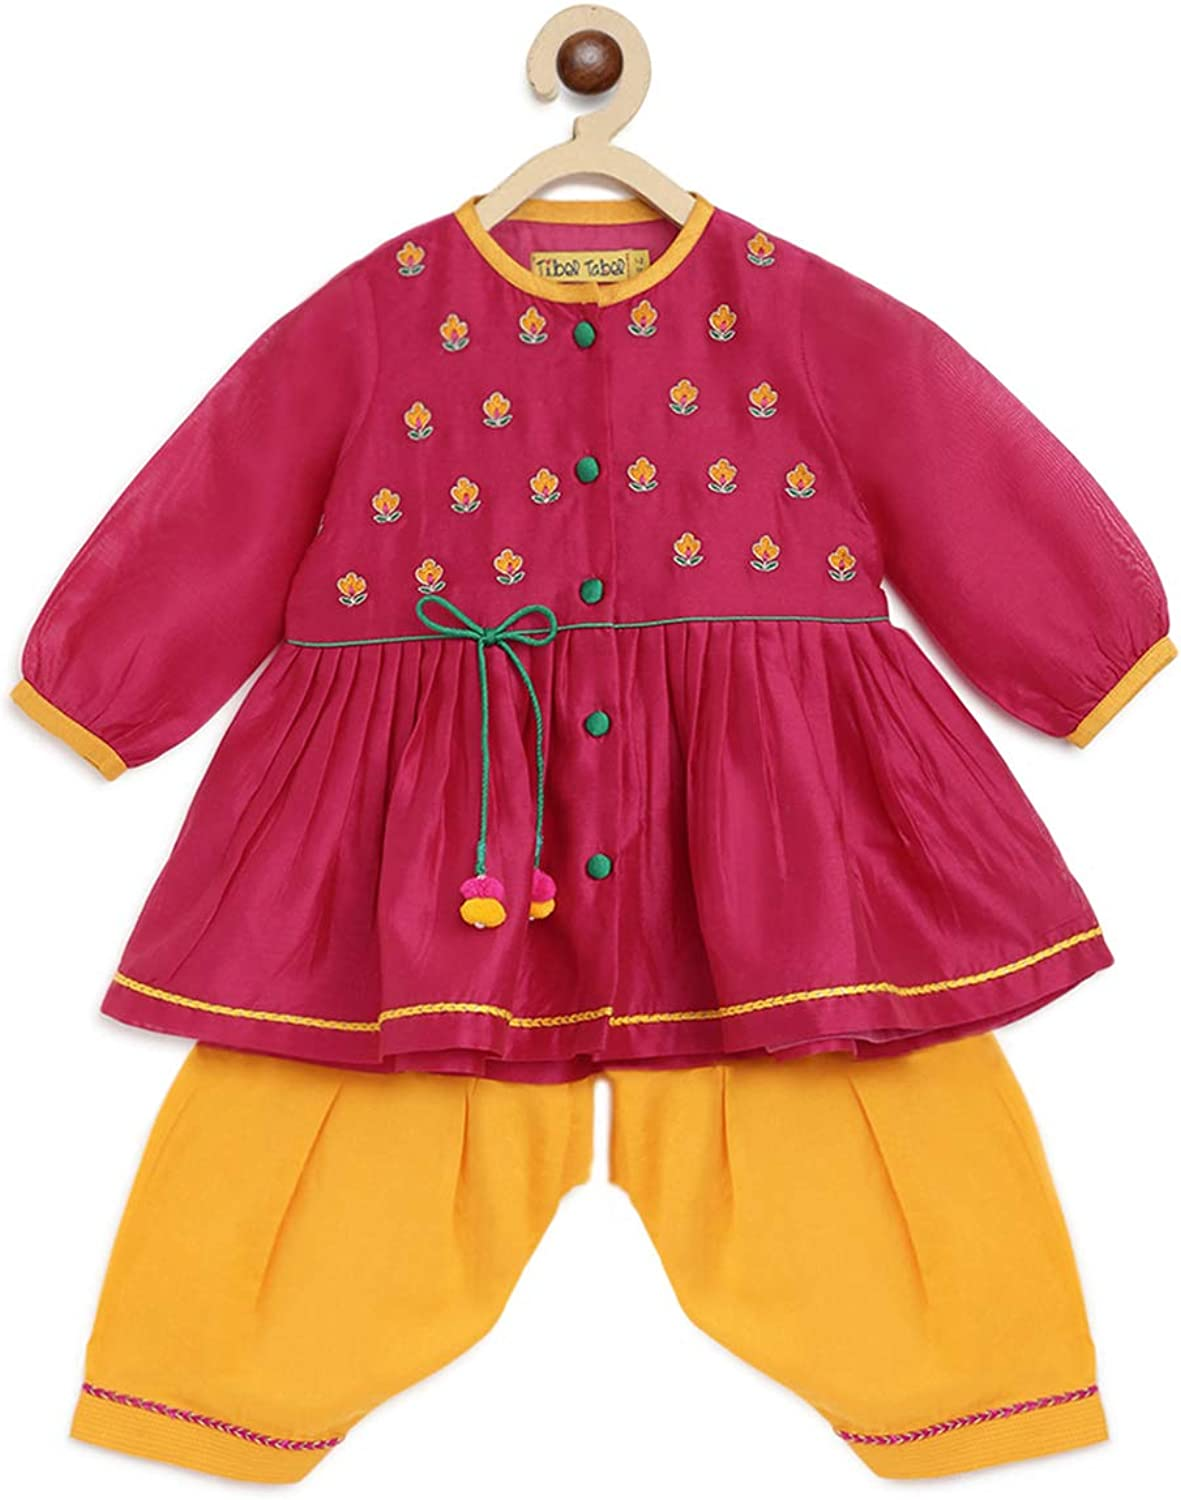 Popular brand in the world Girls Silk Embroidered Cheap mail order specialty store Buta Angrakha Pink - Set Months 3-6